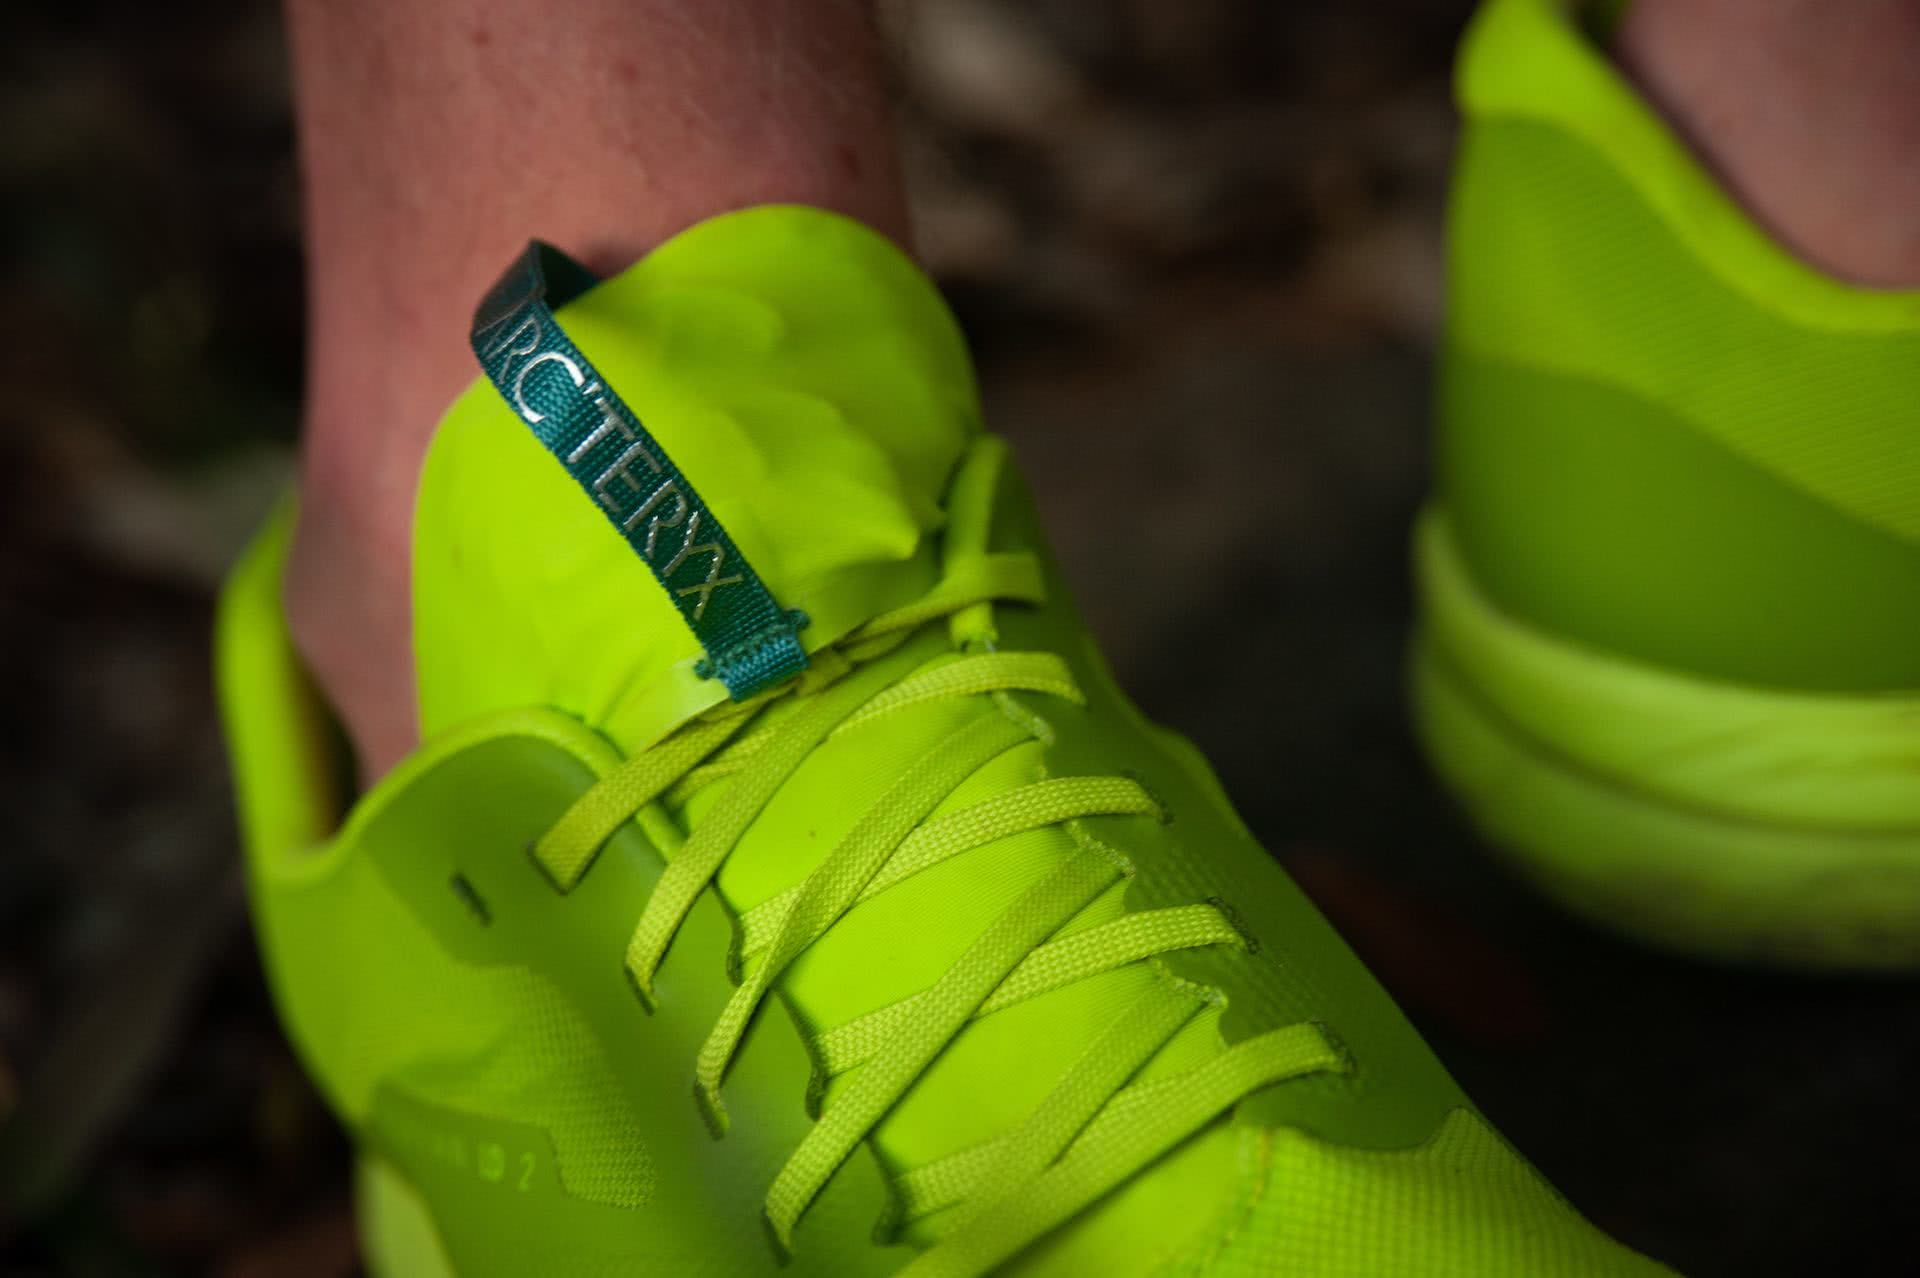 Arc'teryx Norvan LD 2 Trail Running Shoe // Gear Review, photo by Evan Andrews, trail runners, green, LIME GREEN,